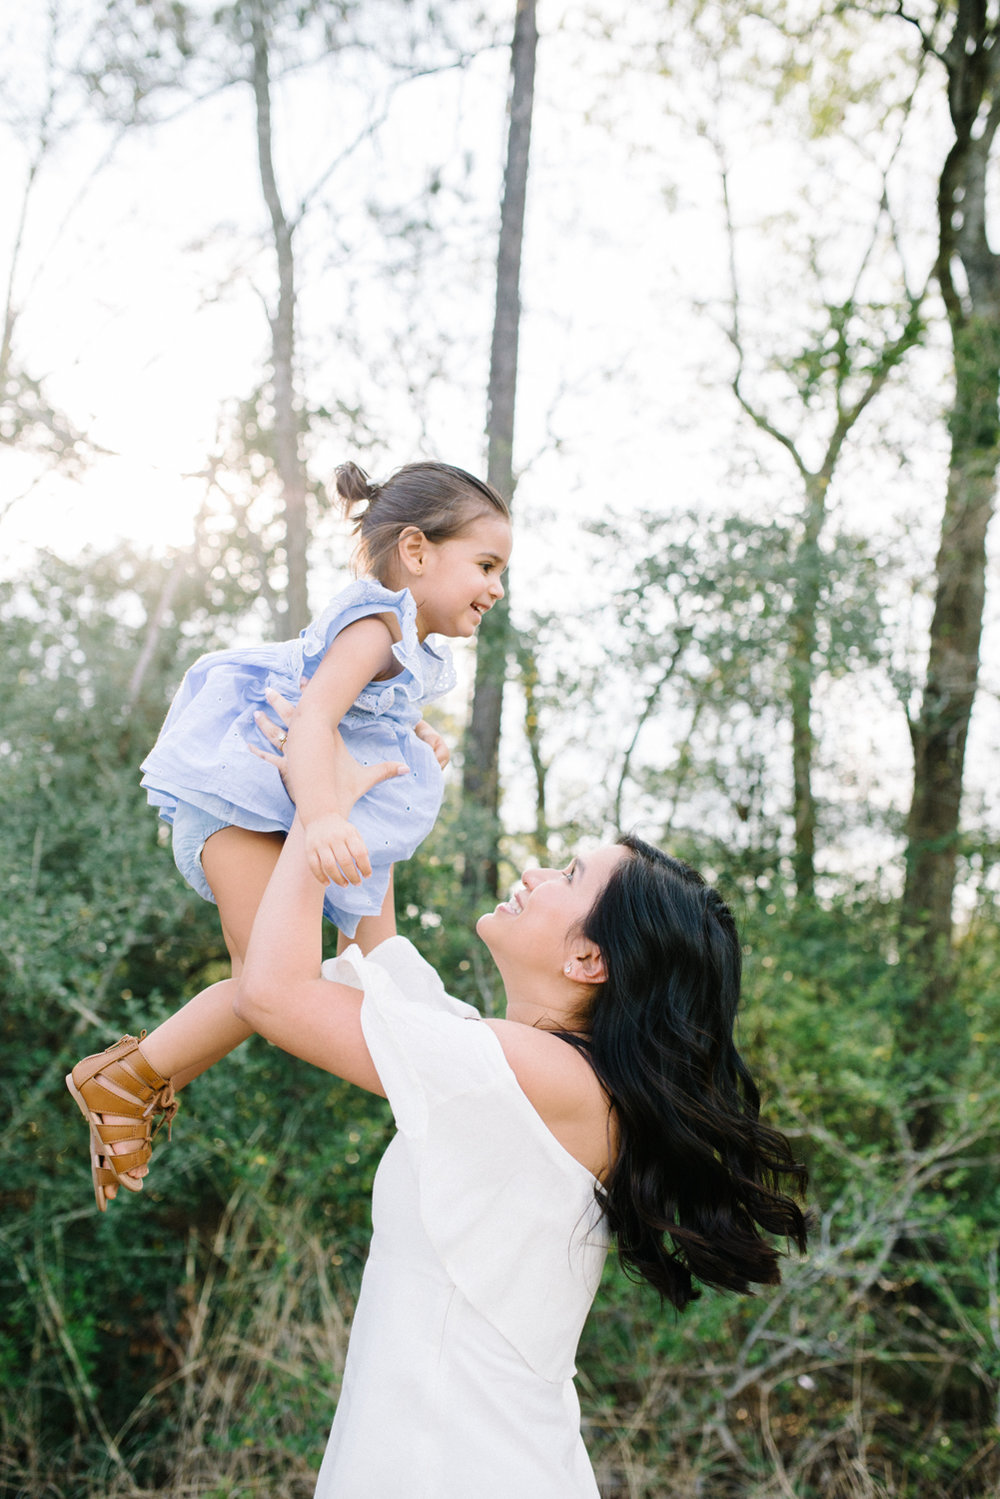 familysession-houstonphotographer-houstonfamilyphotographer-naturallight-familysession-17.jpg